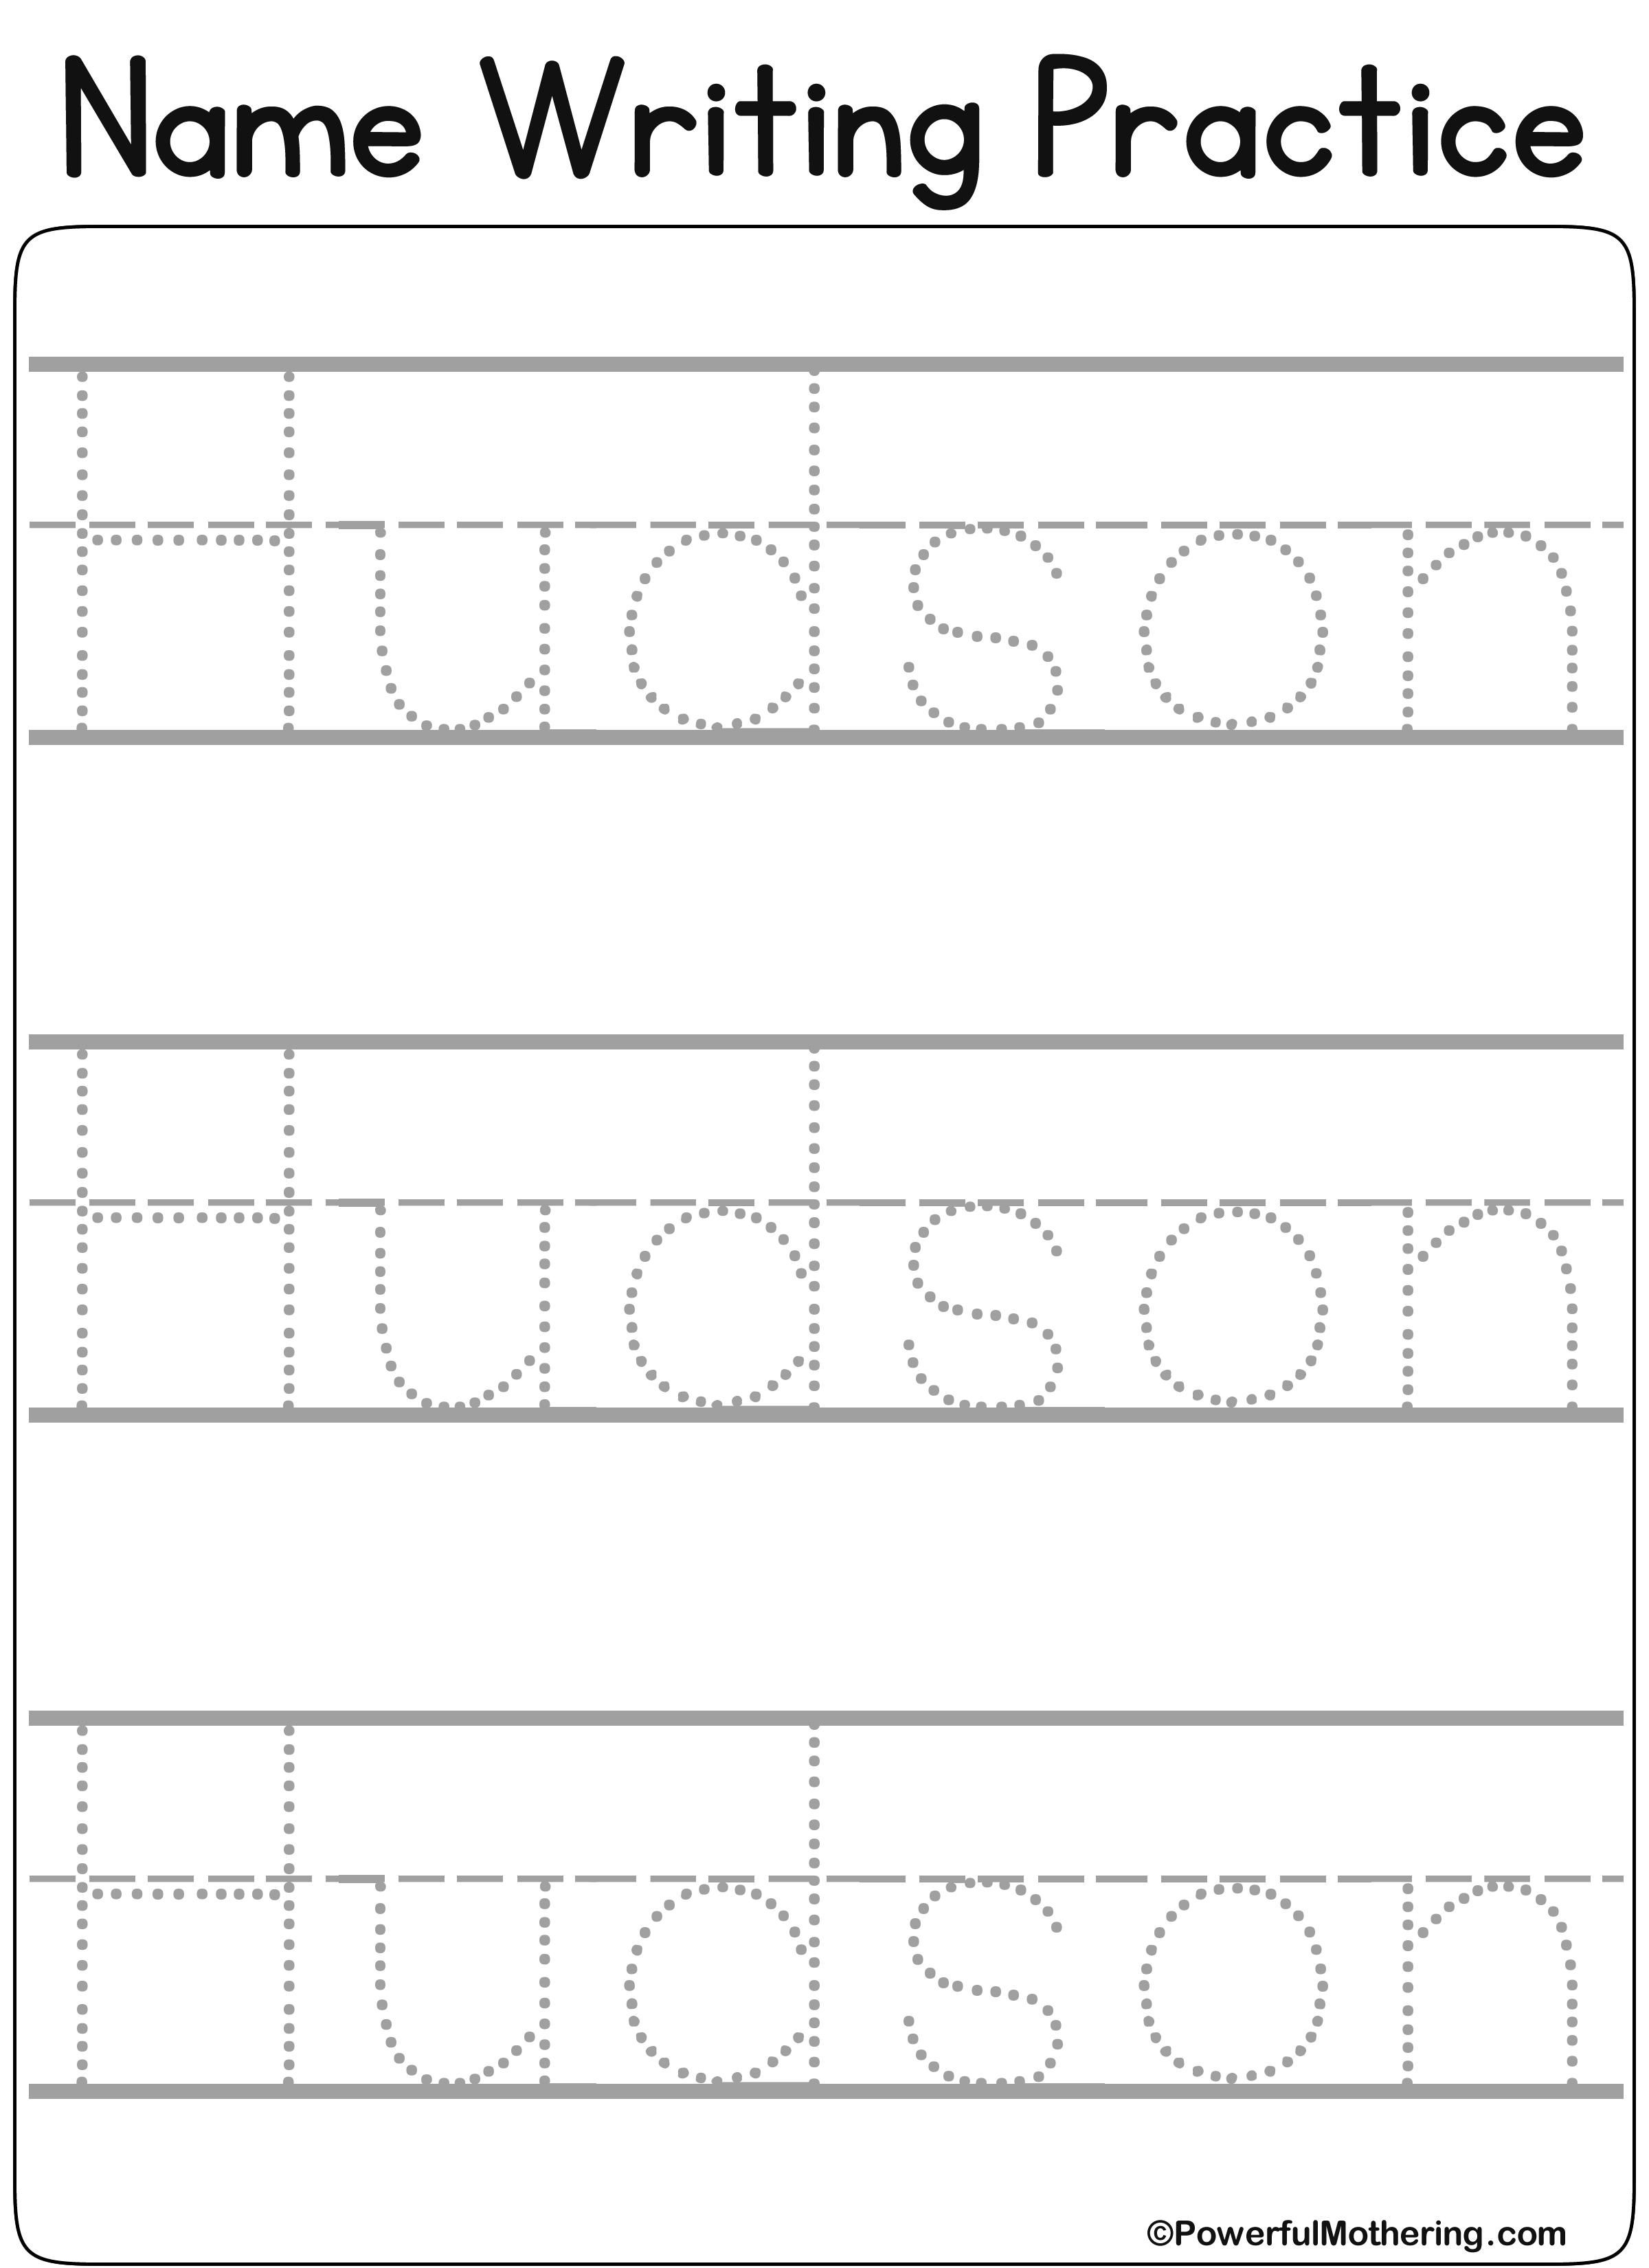 Pin by Yeo on Preschool Worksheets Name tracing